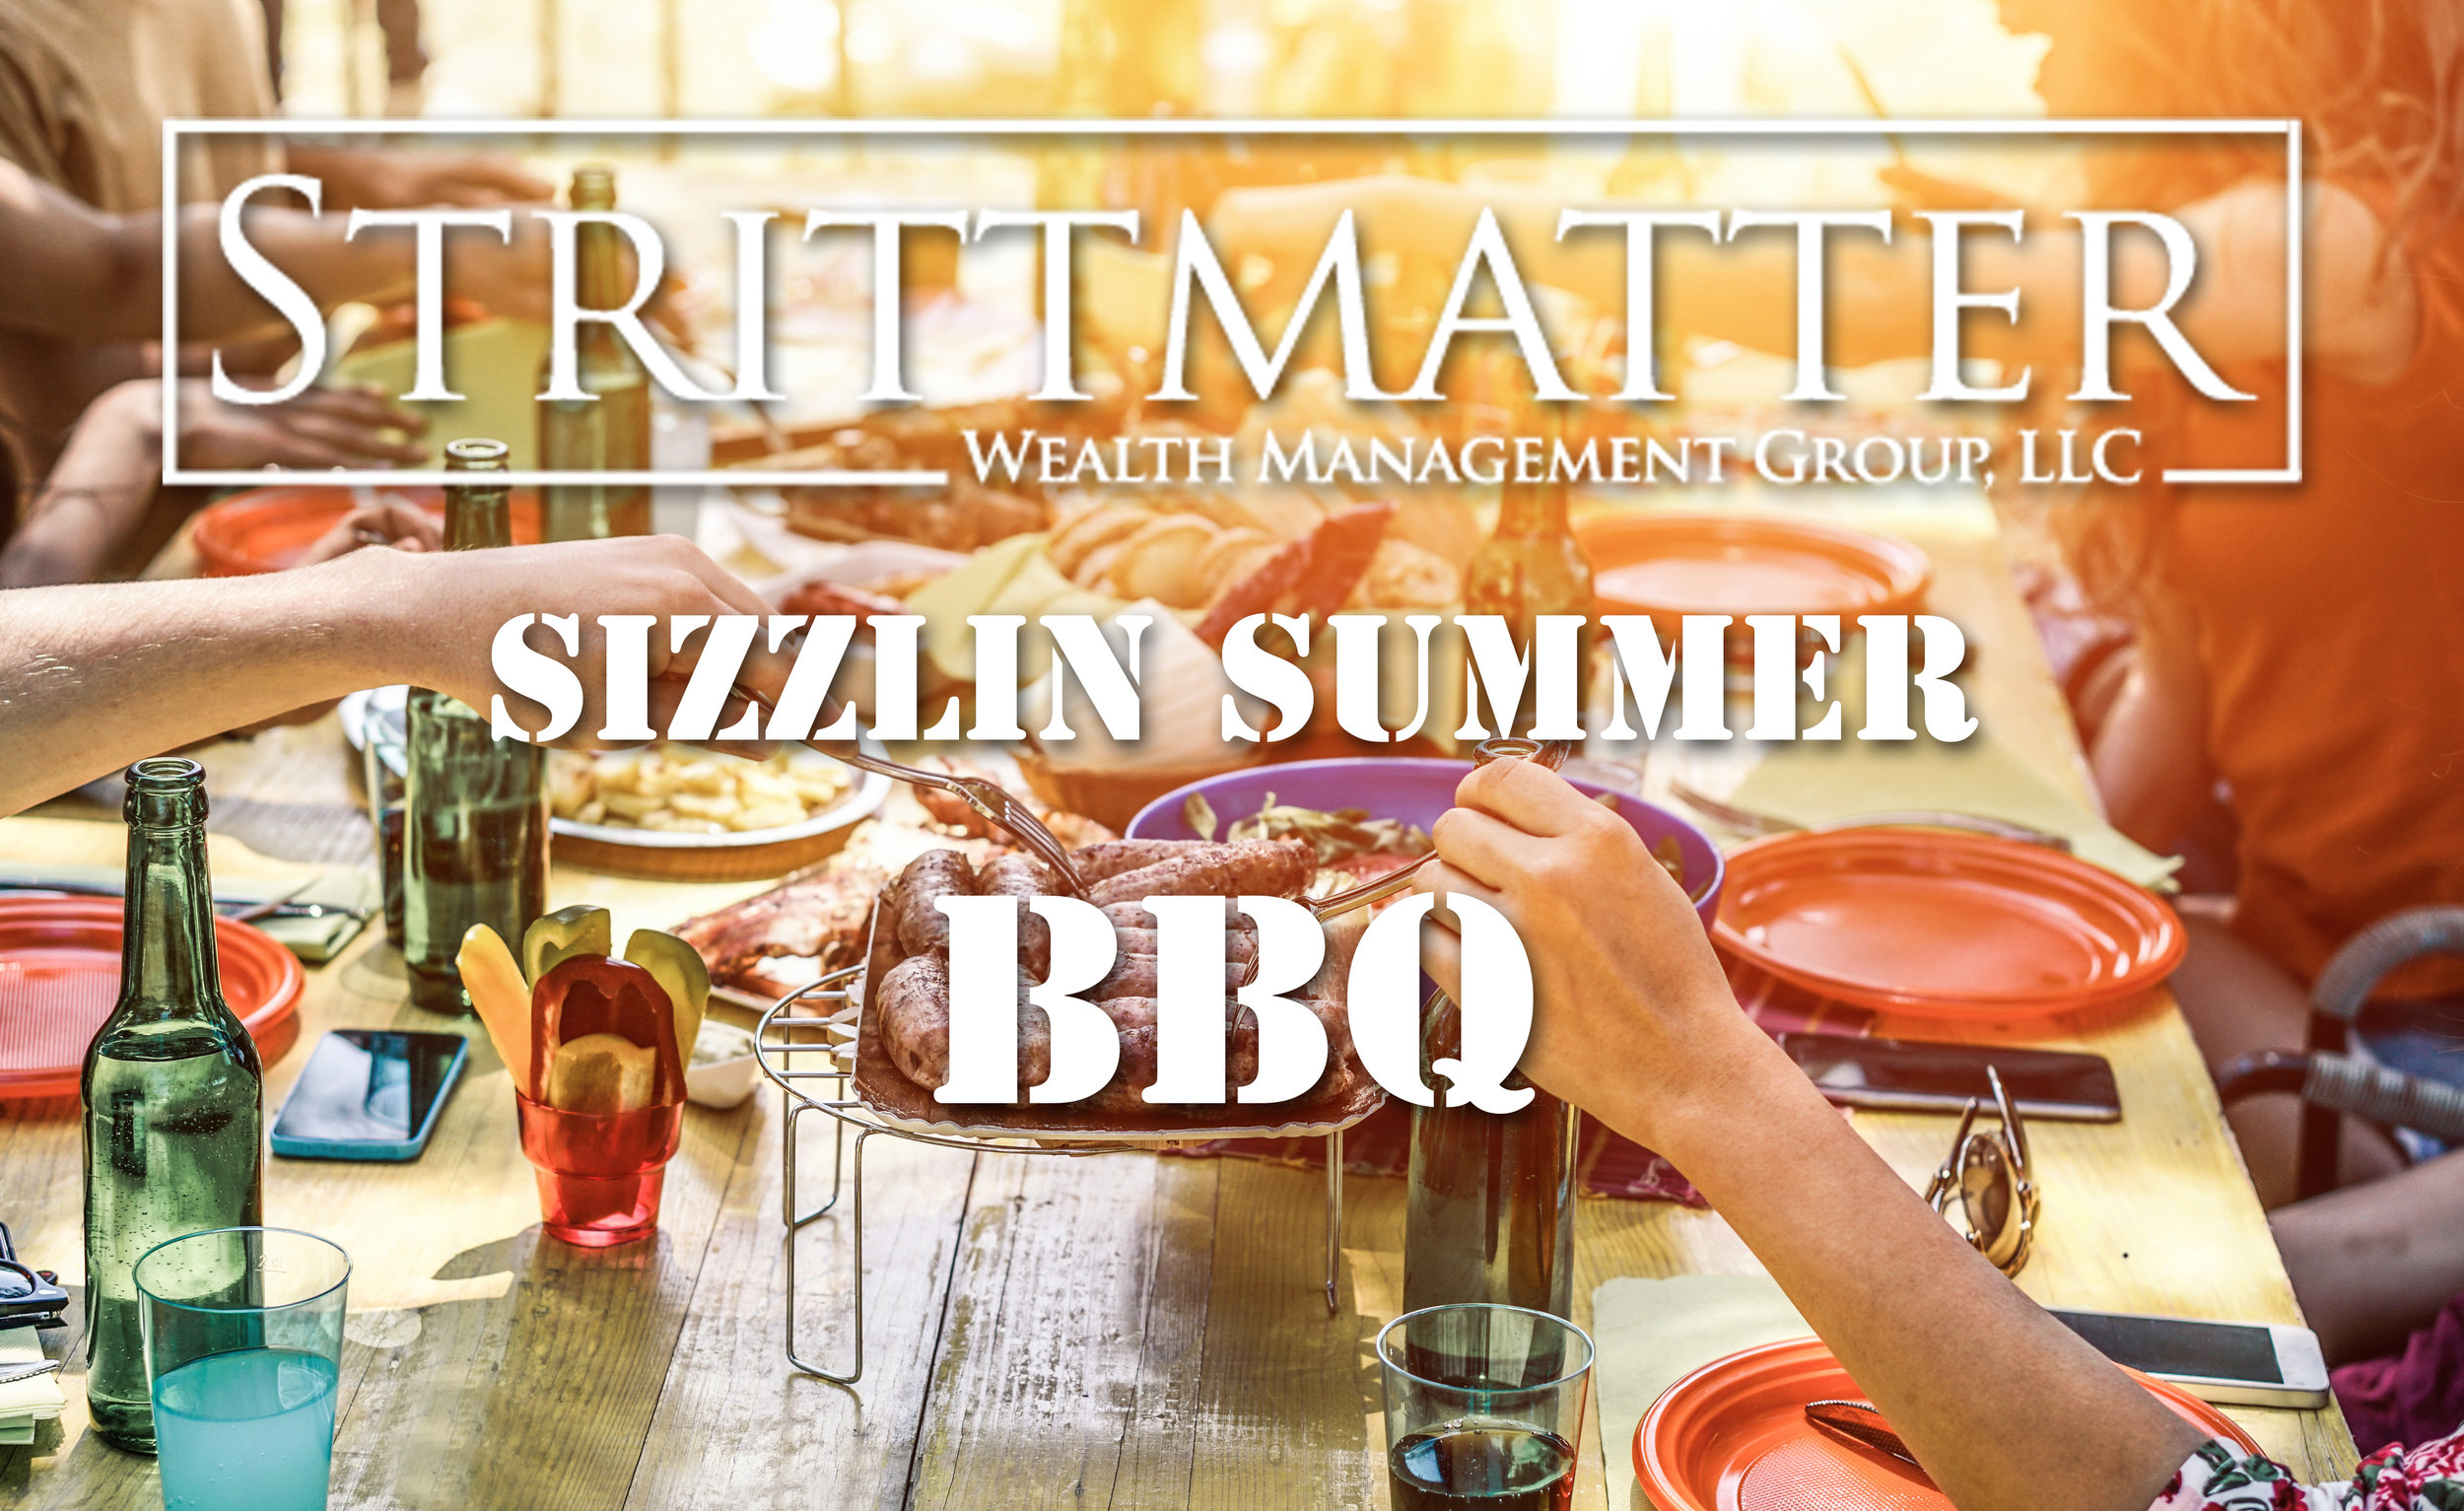 Strittmatter Wealth Management Group Fort Worth Texas Financial Investment Firm Wealth Management Firm Summer Client Event